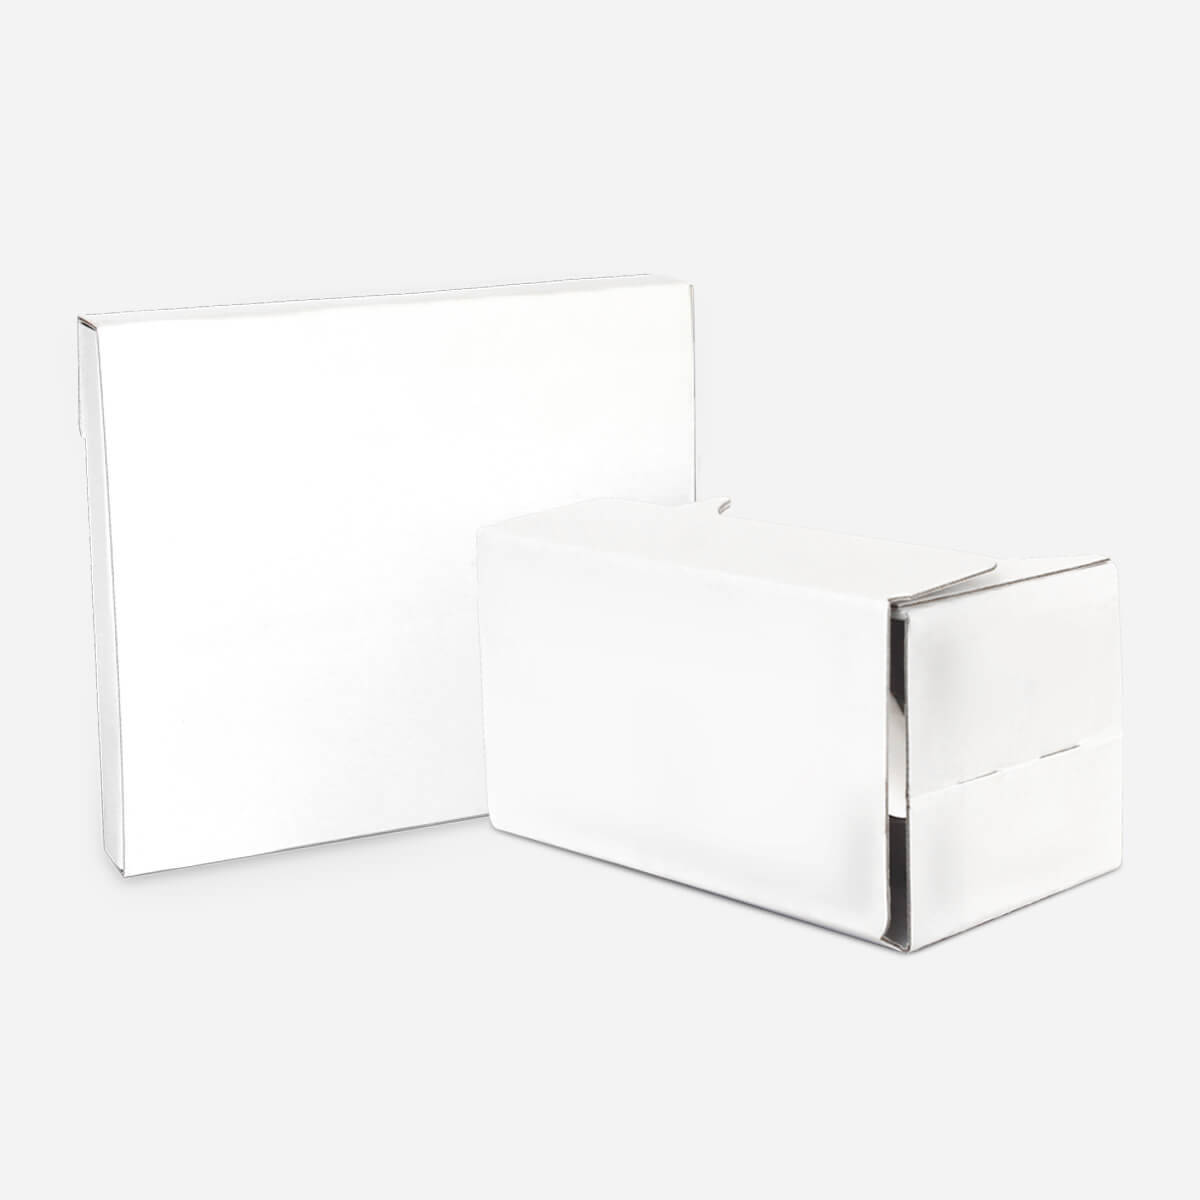 cardboard-neutral-box-09.jpg